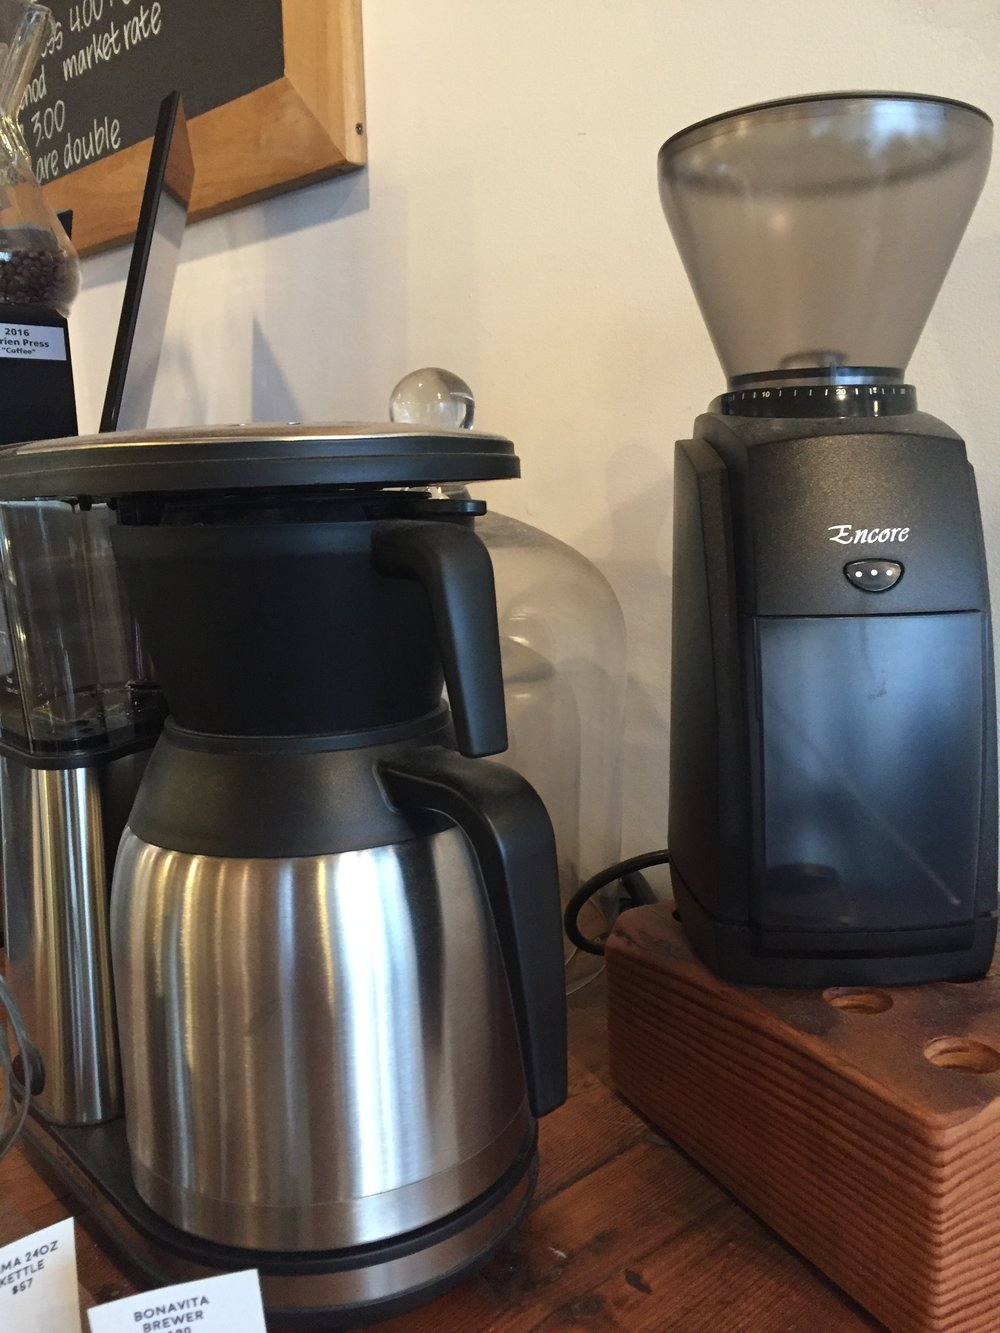 The match made in heaven: Baratza  Encore grinder * and  Bonavita 8-cup Brewer *.